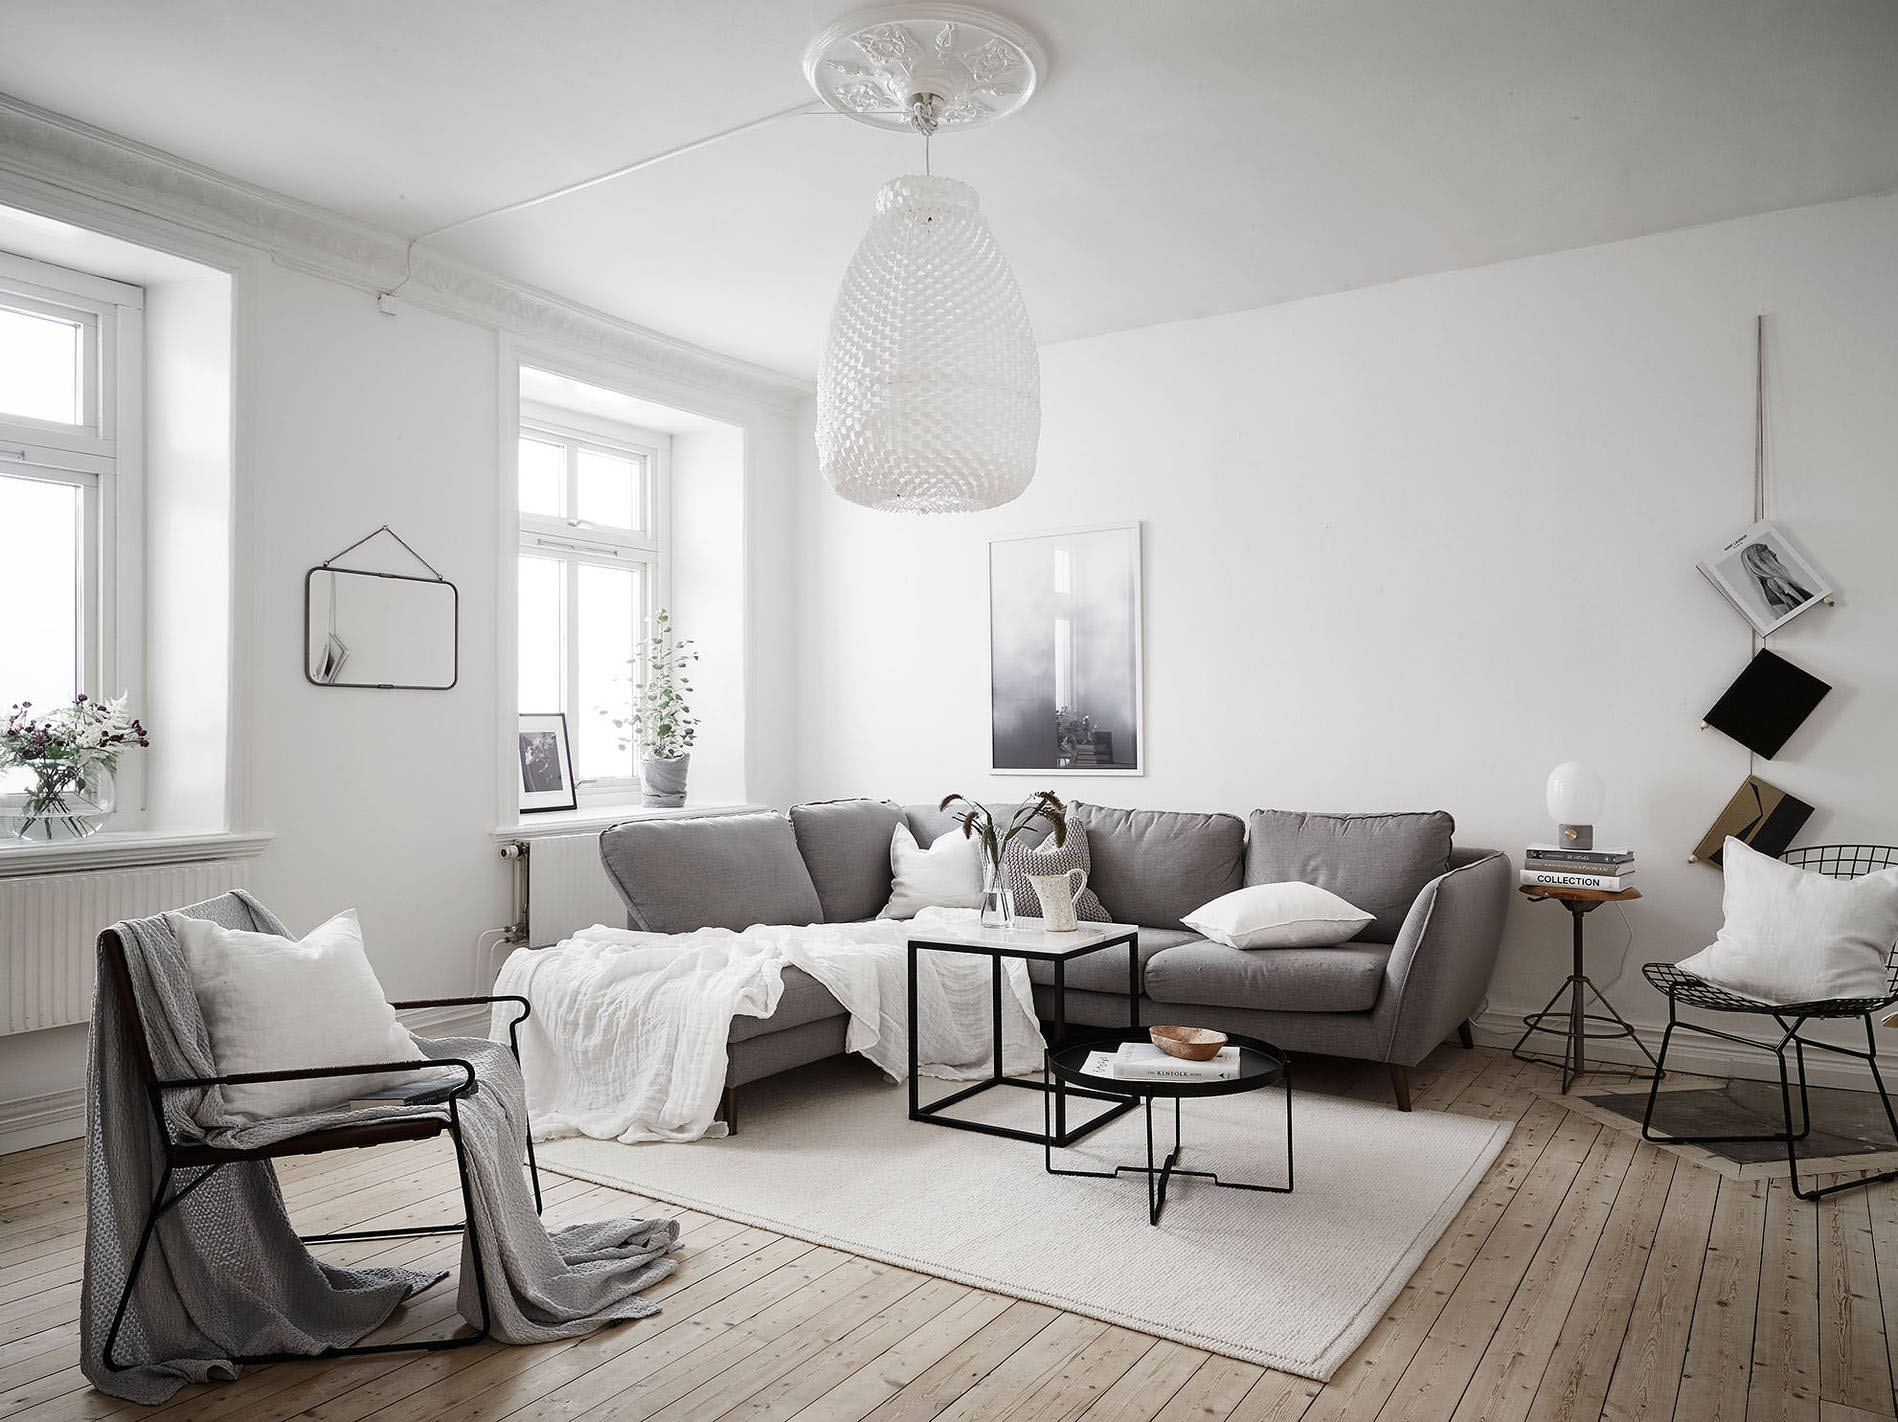 Top 10 tips for adding scandinavian style to your home happy grey scandinavian living room with large pendant lamp top 10 tips for adding scandinavian style to arubaitofo Image collections